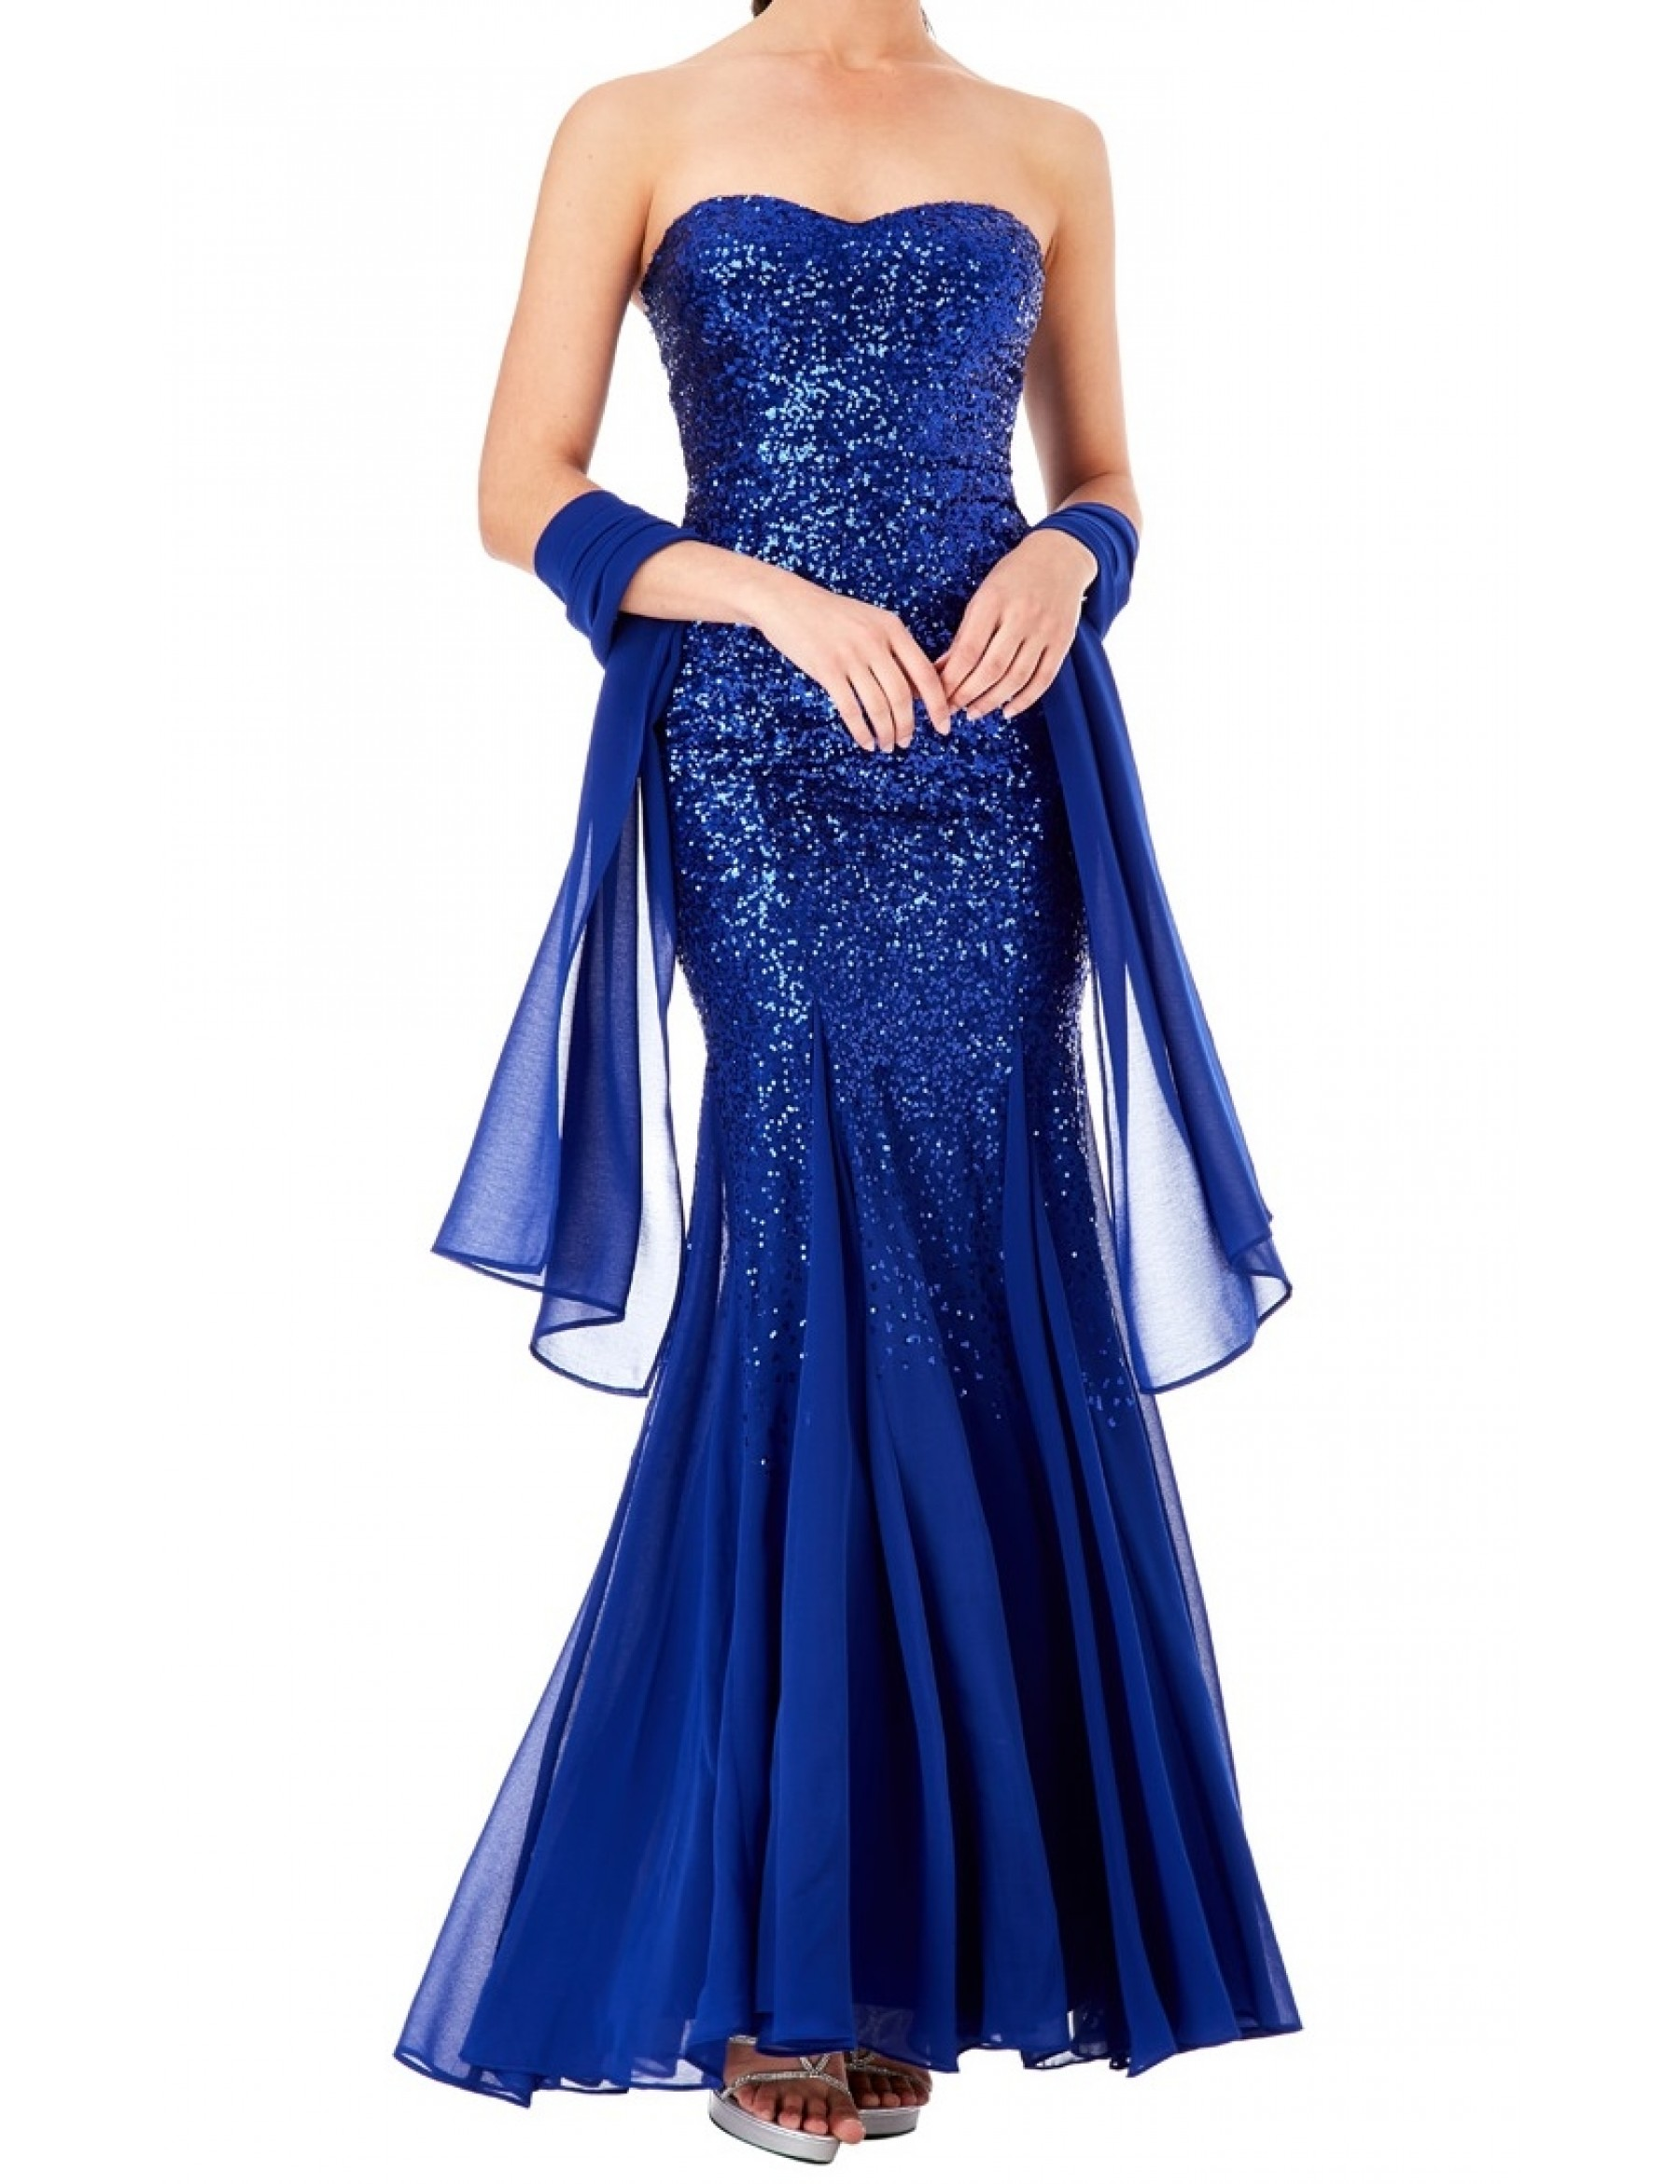 Sweetheart Sequin with Chiffon Inverted Panels at hemline